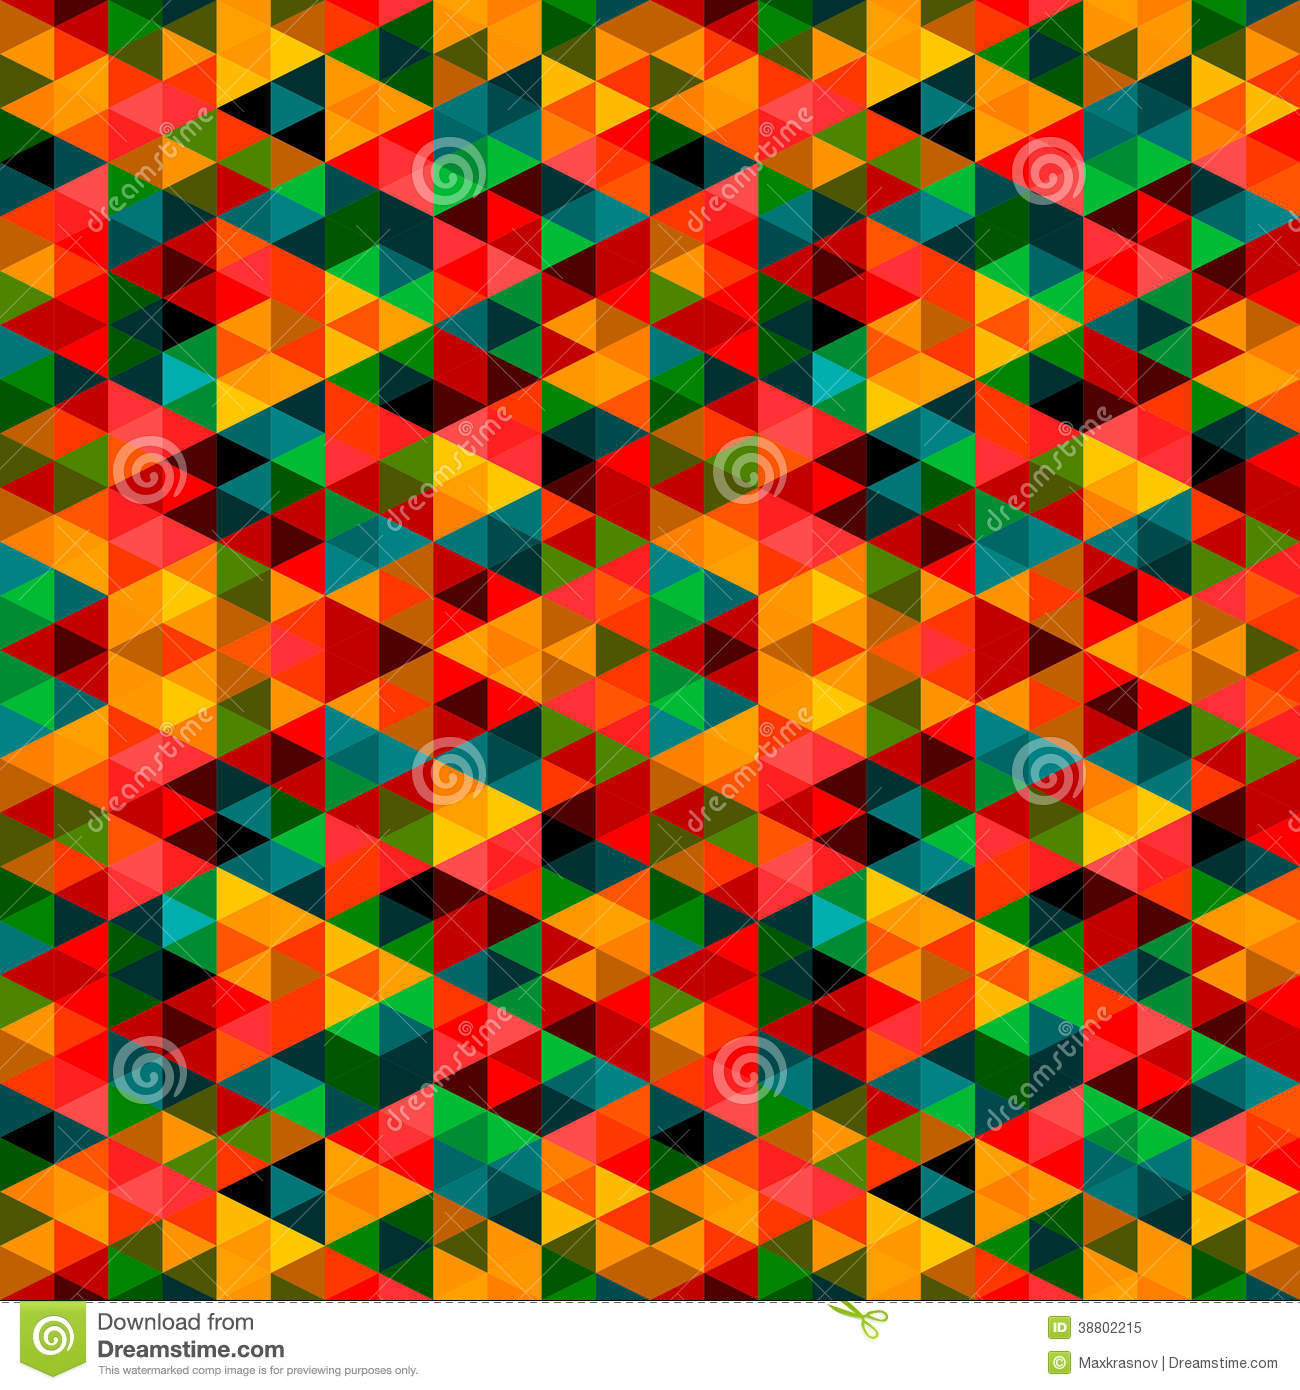 Download Wallpaper Graffiti 3d Abstract Pixel Triangle Pattern Stock Vector Image 38802215